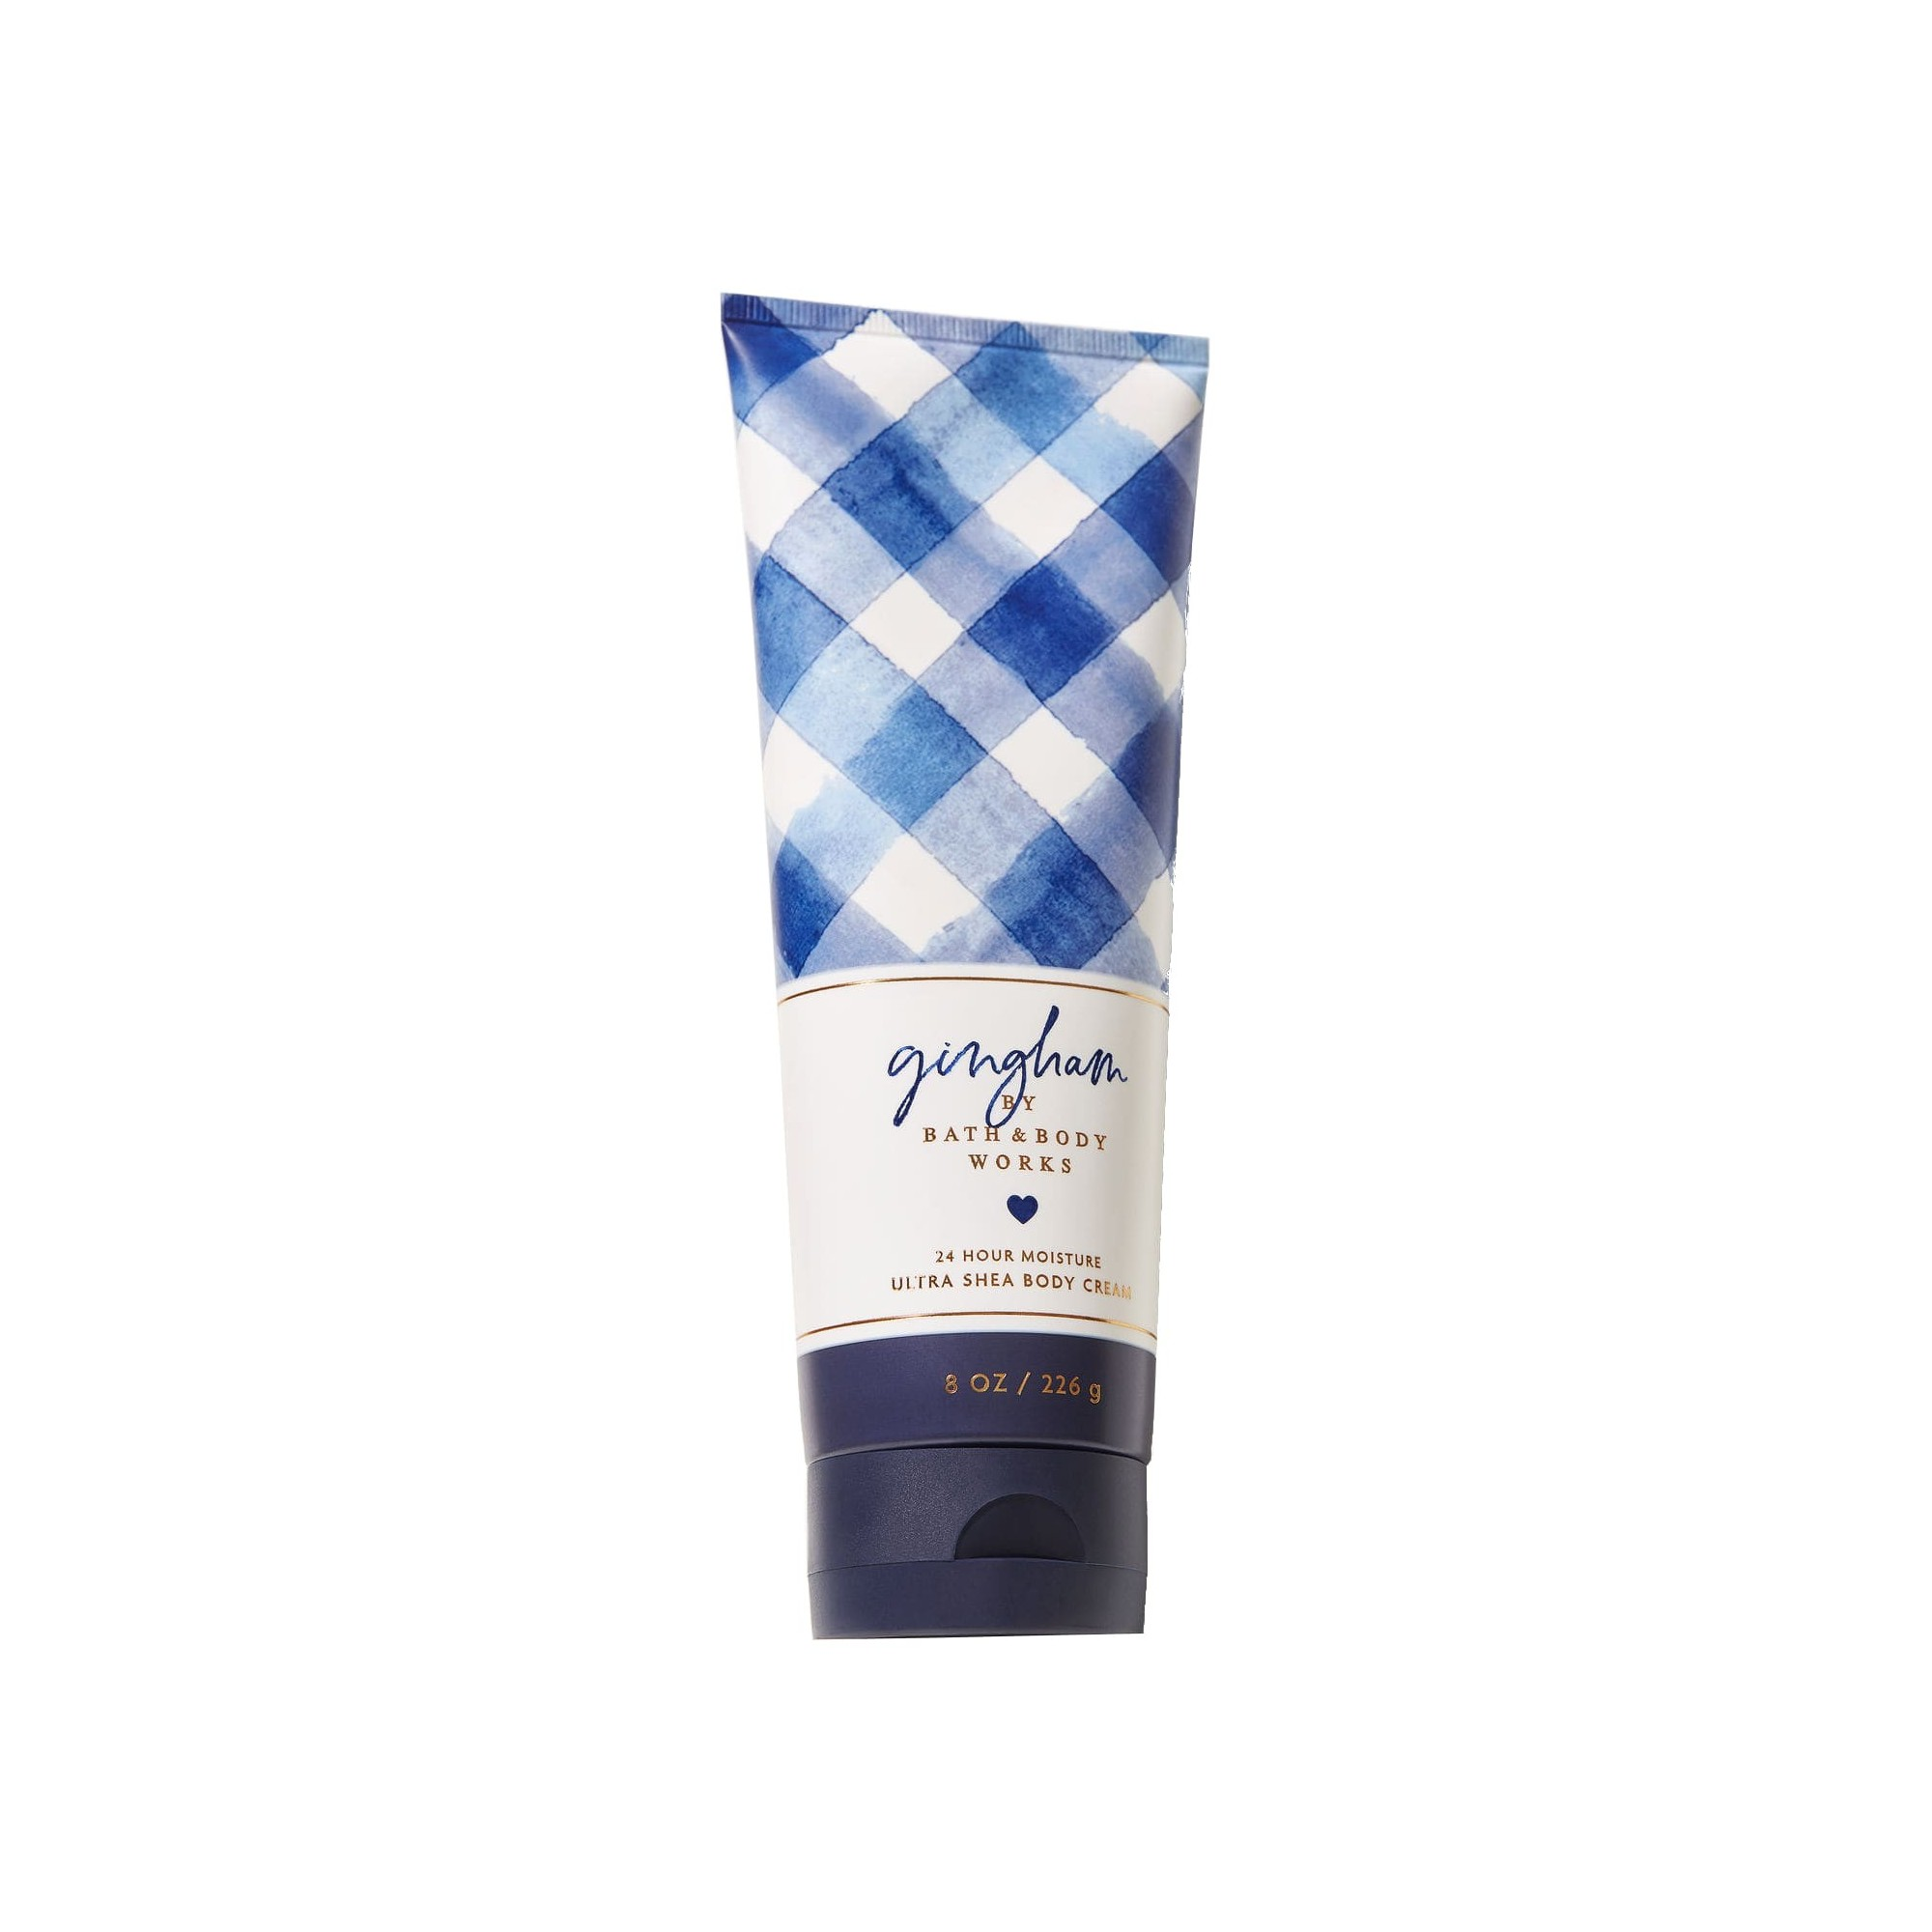 Bath & Body Works Gingham Ultra Shea Body Cream